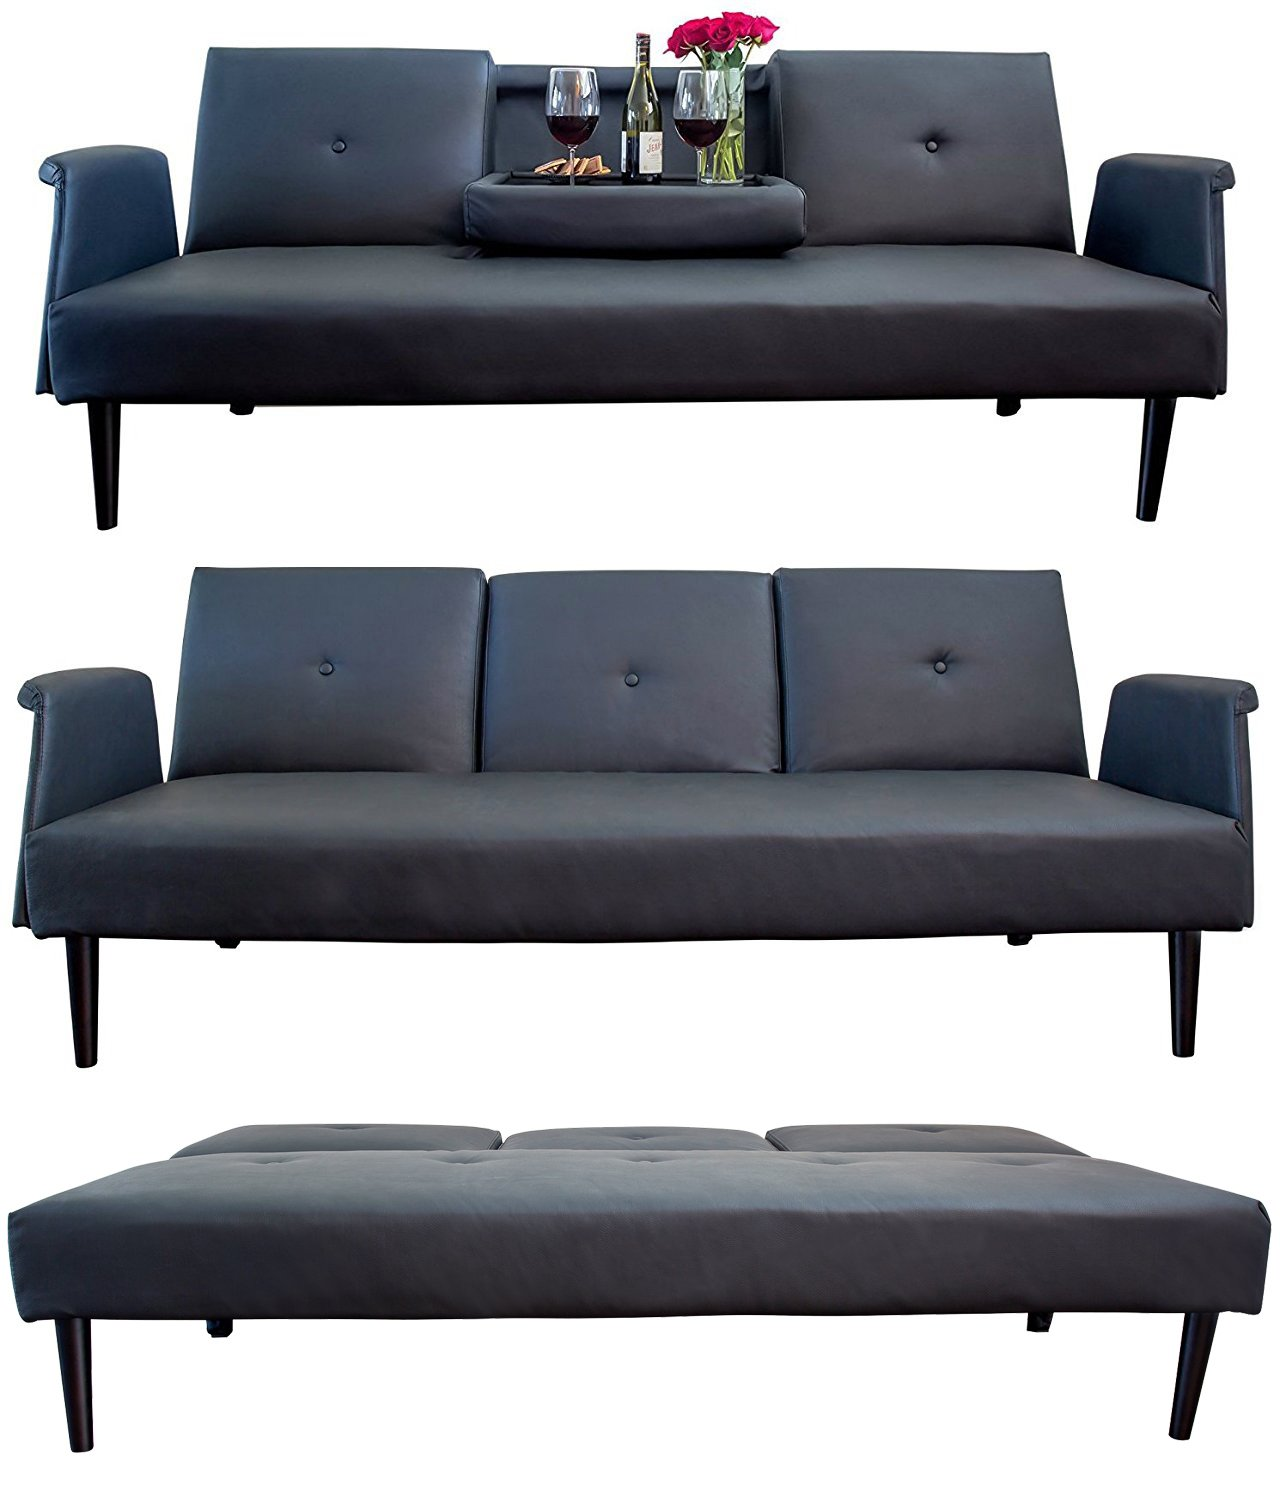 Leather sofa bed with tray and cup holders black contemporary futon bed gorgeous